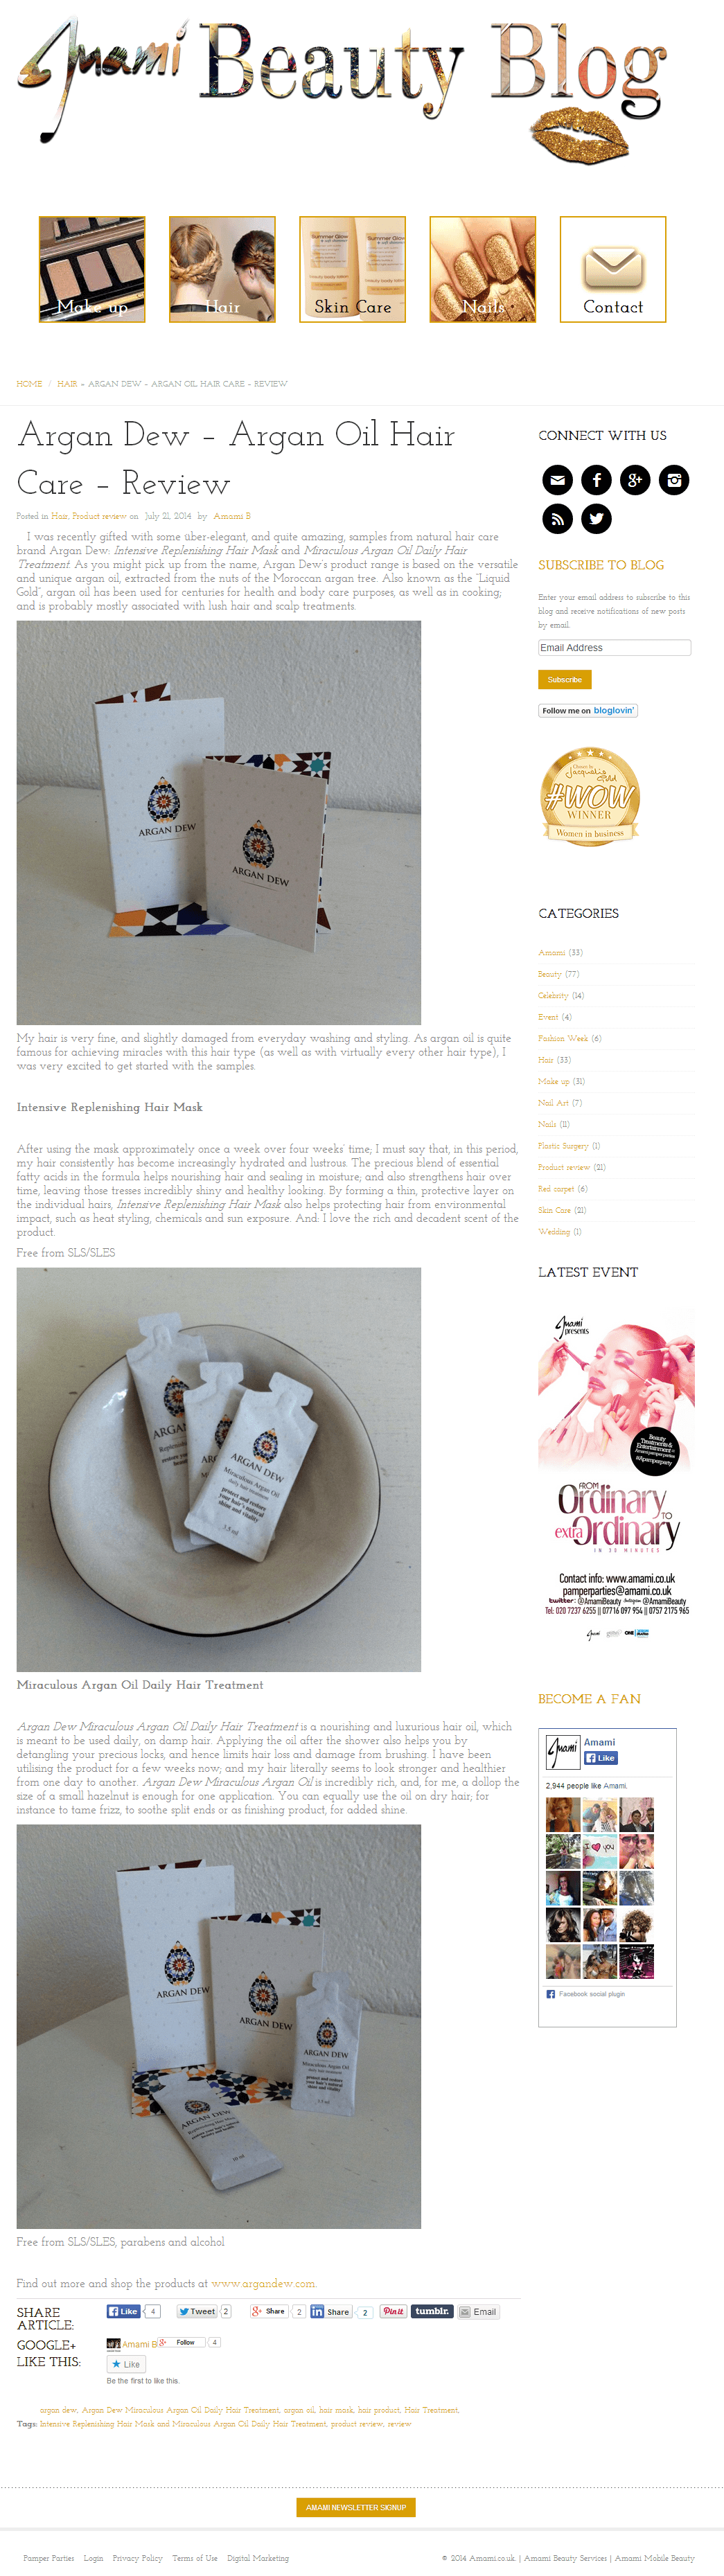 Argan dew review from Juami beauty blog